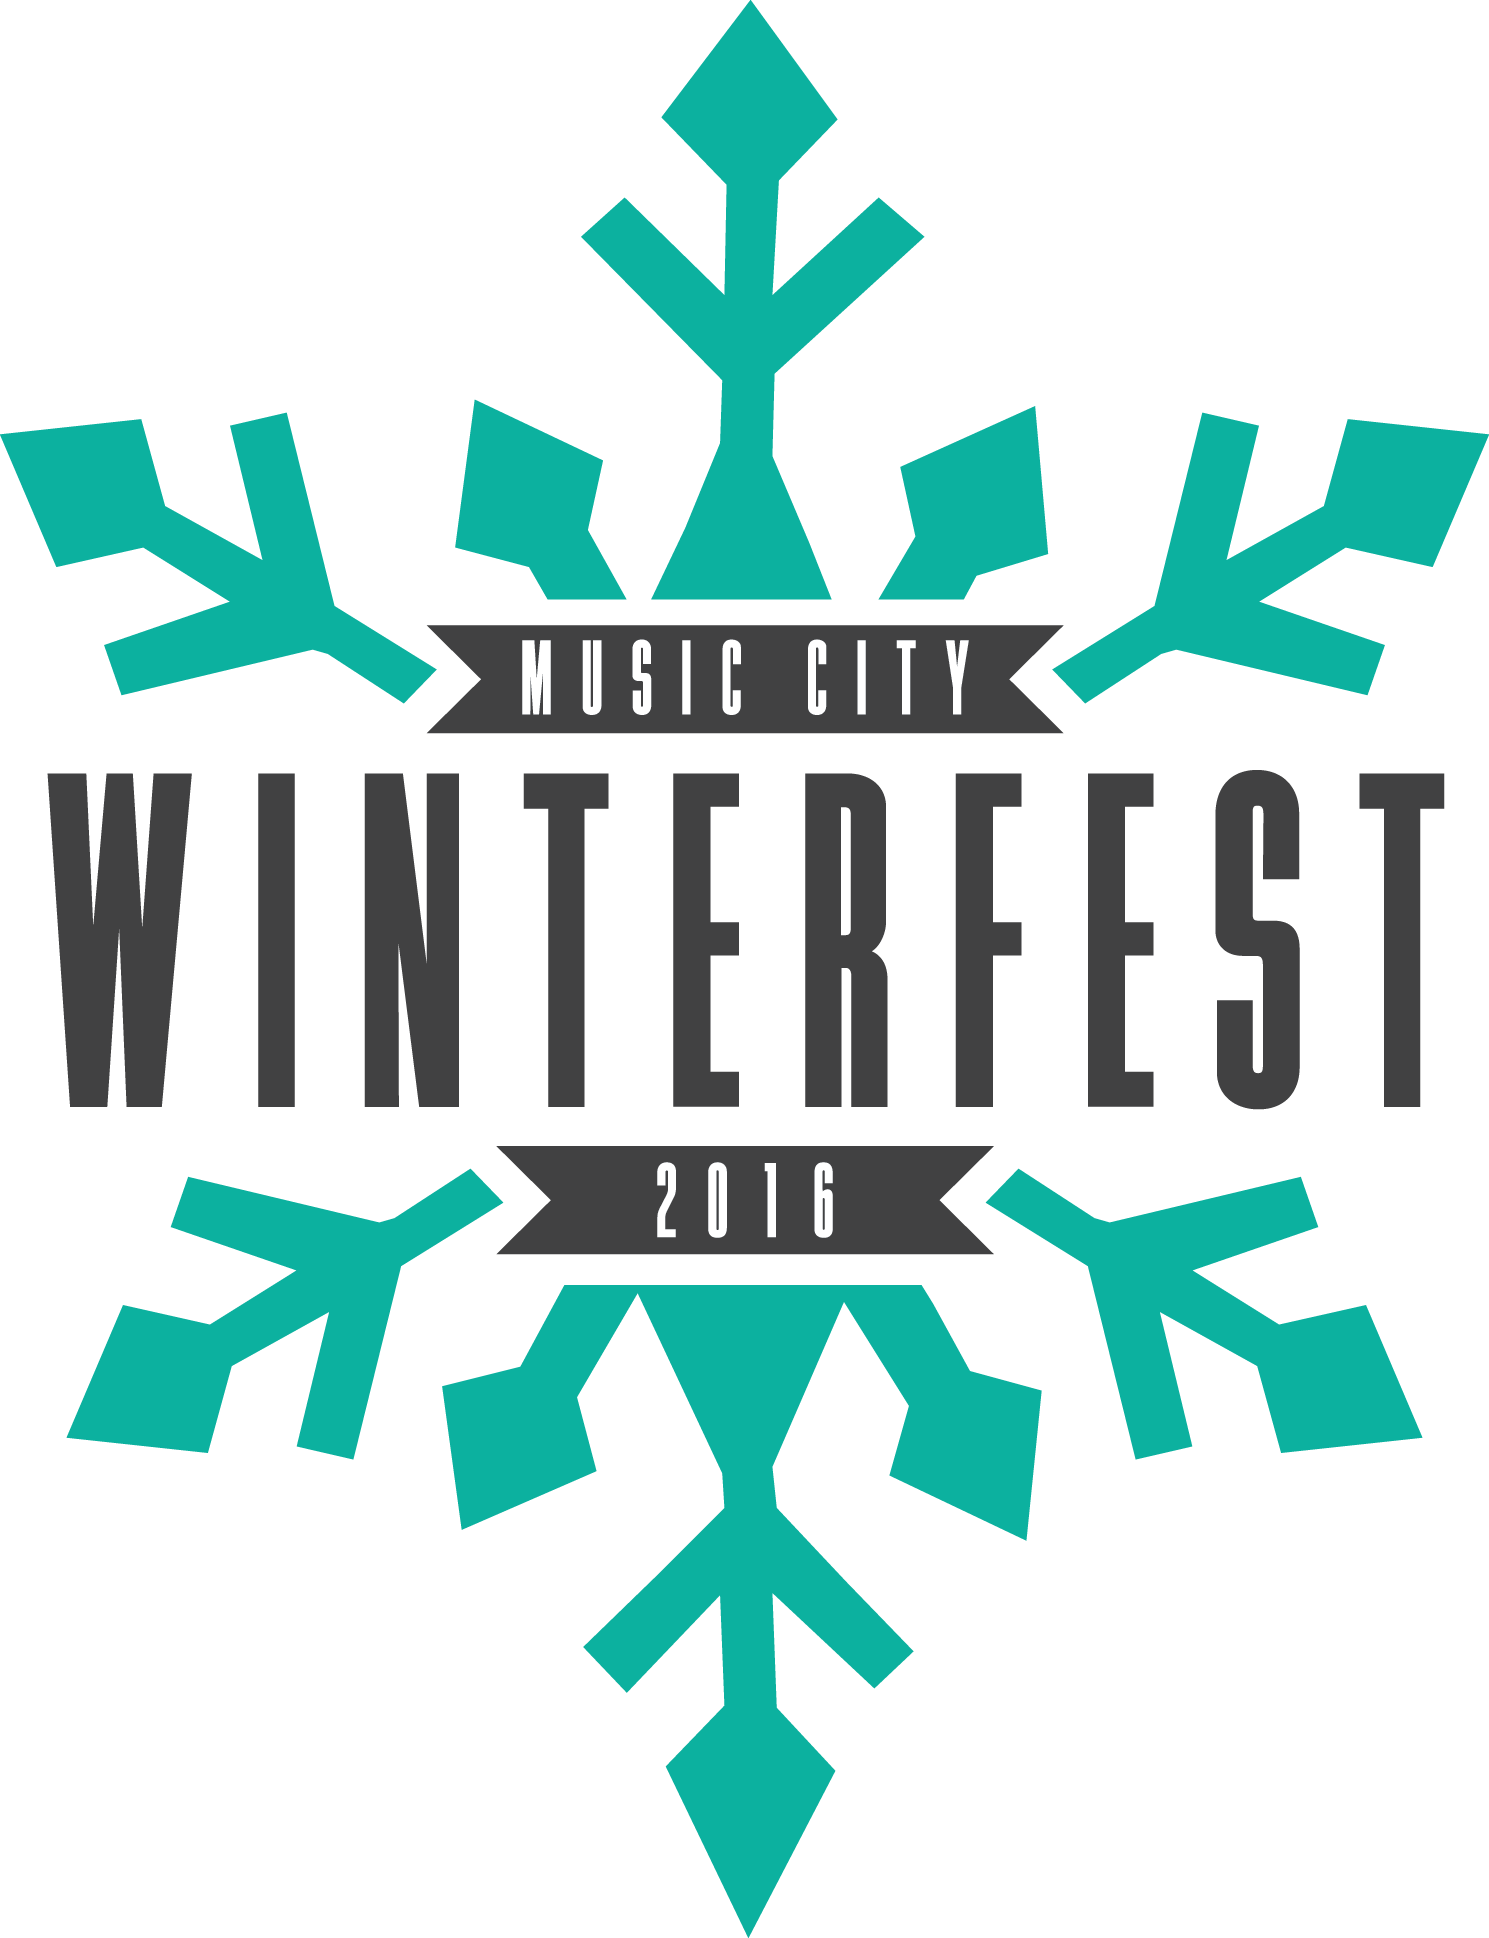 Music City Winterfest